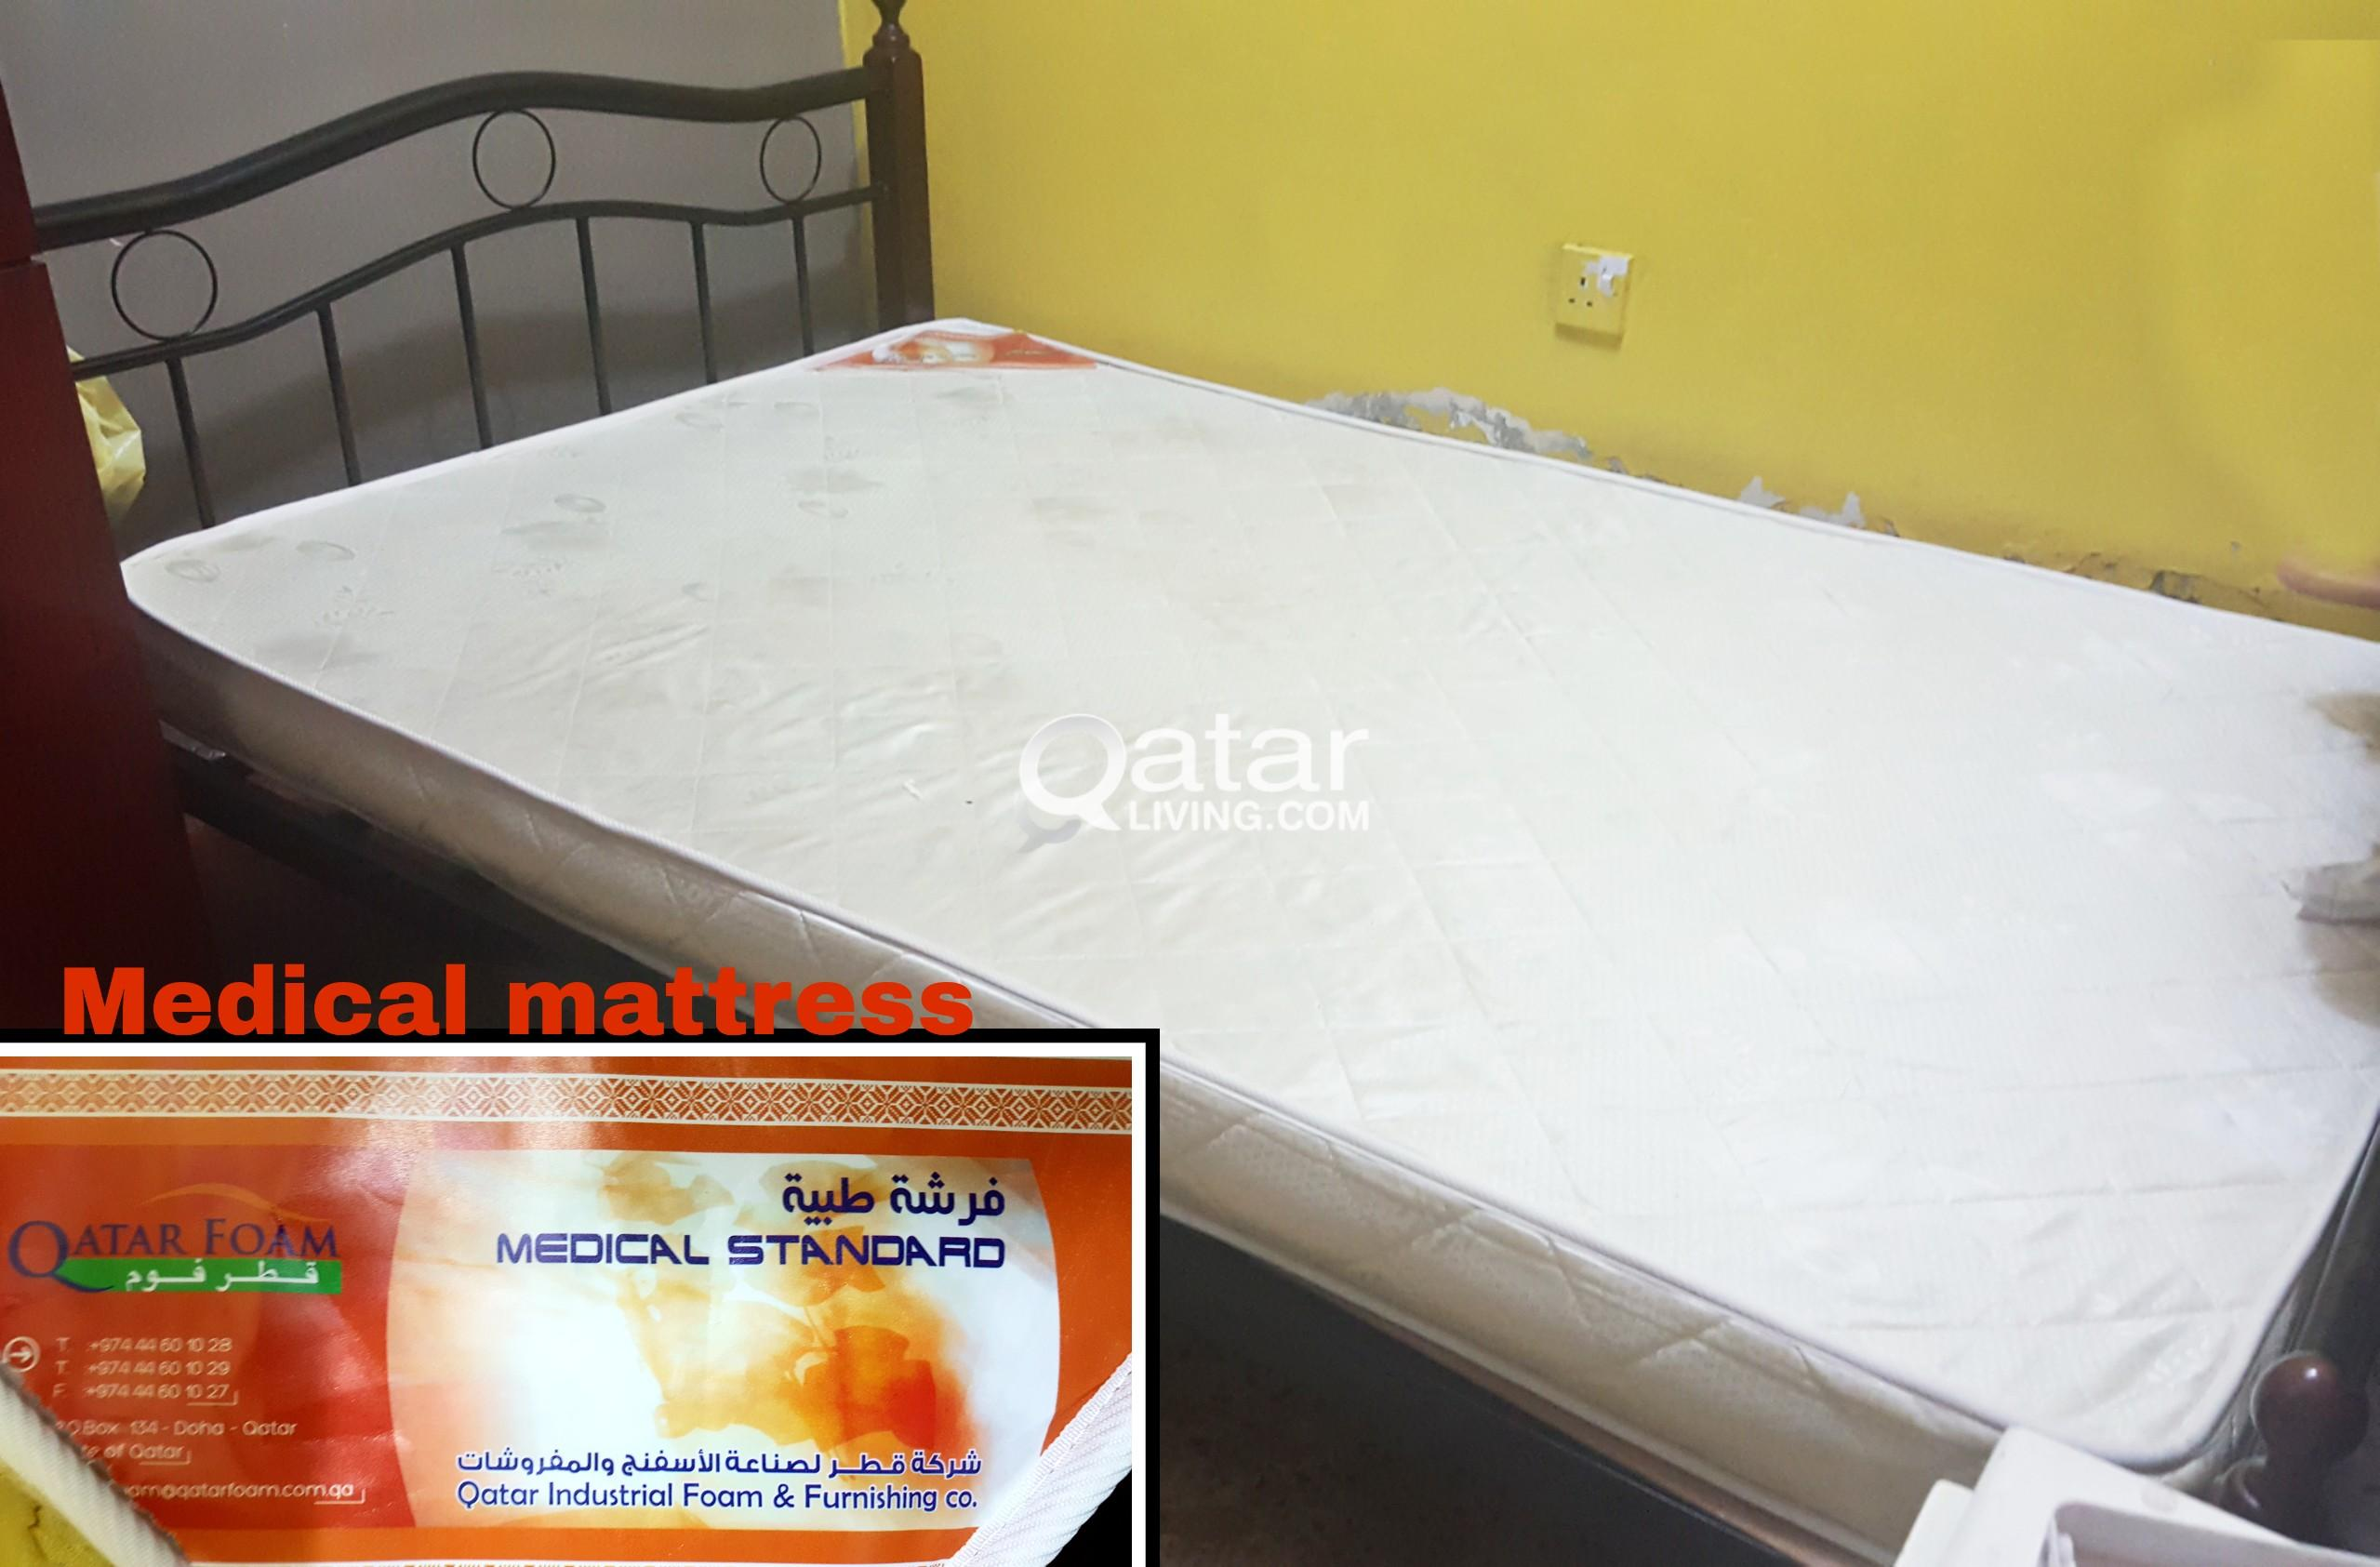 Bed 120 X 190 Steel Double Bed With Medical Mattress 120 X 190 Qatar Living